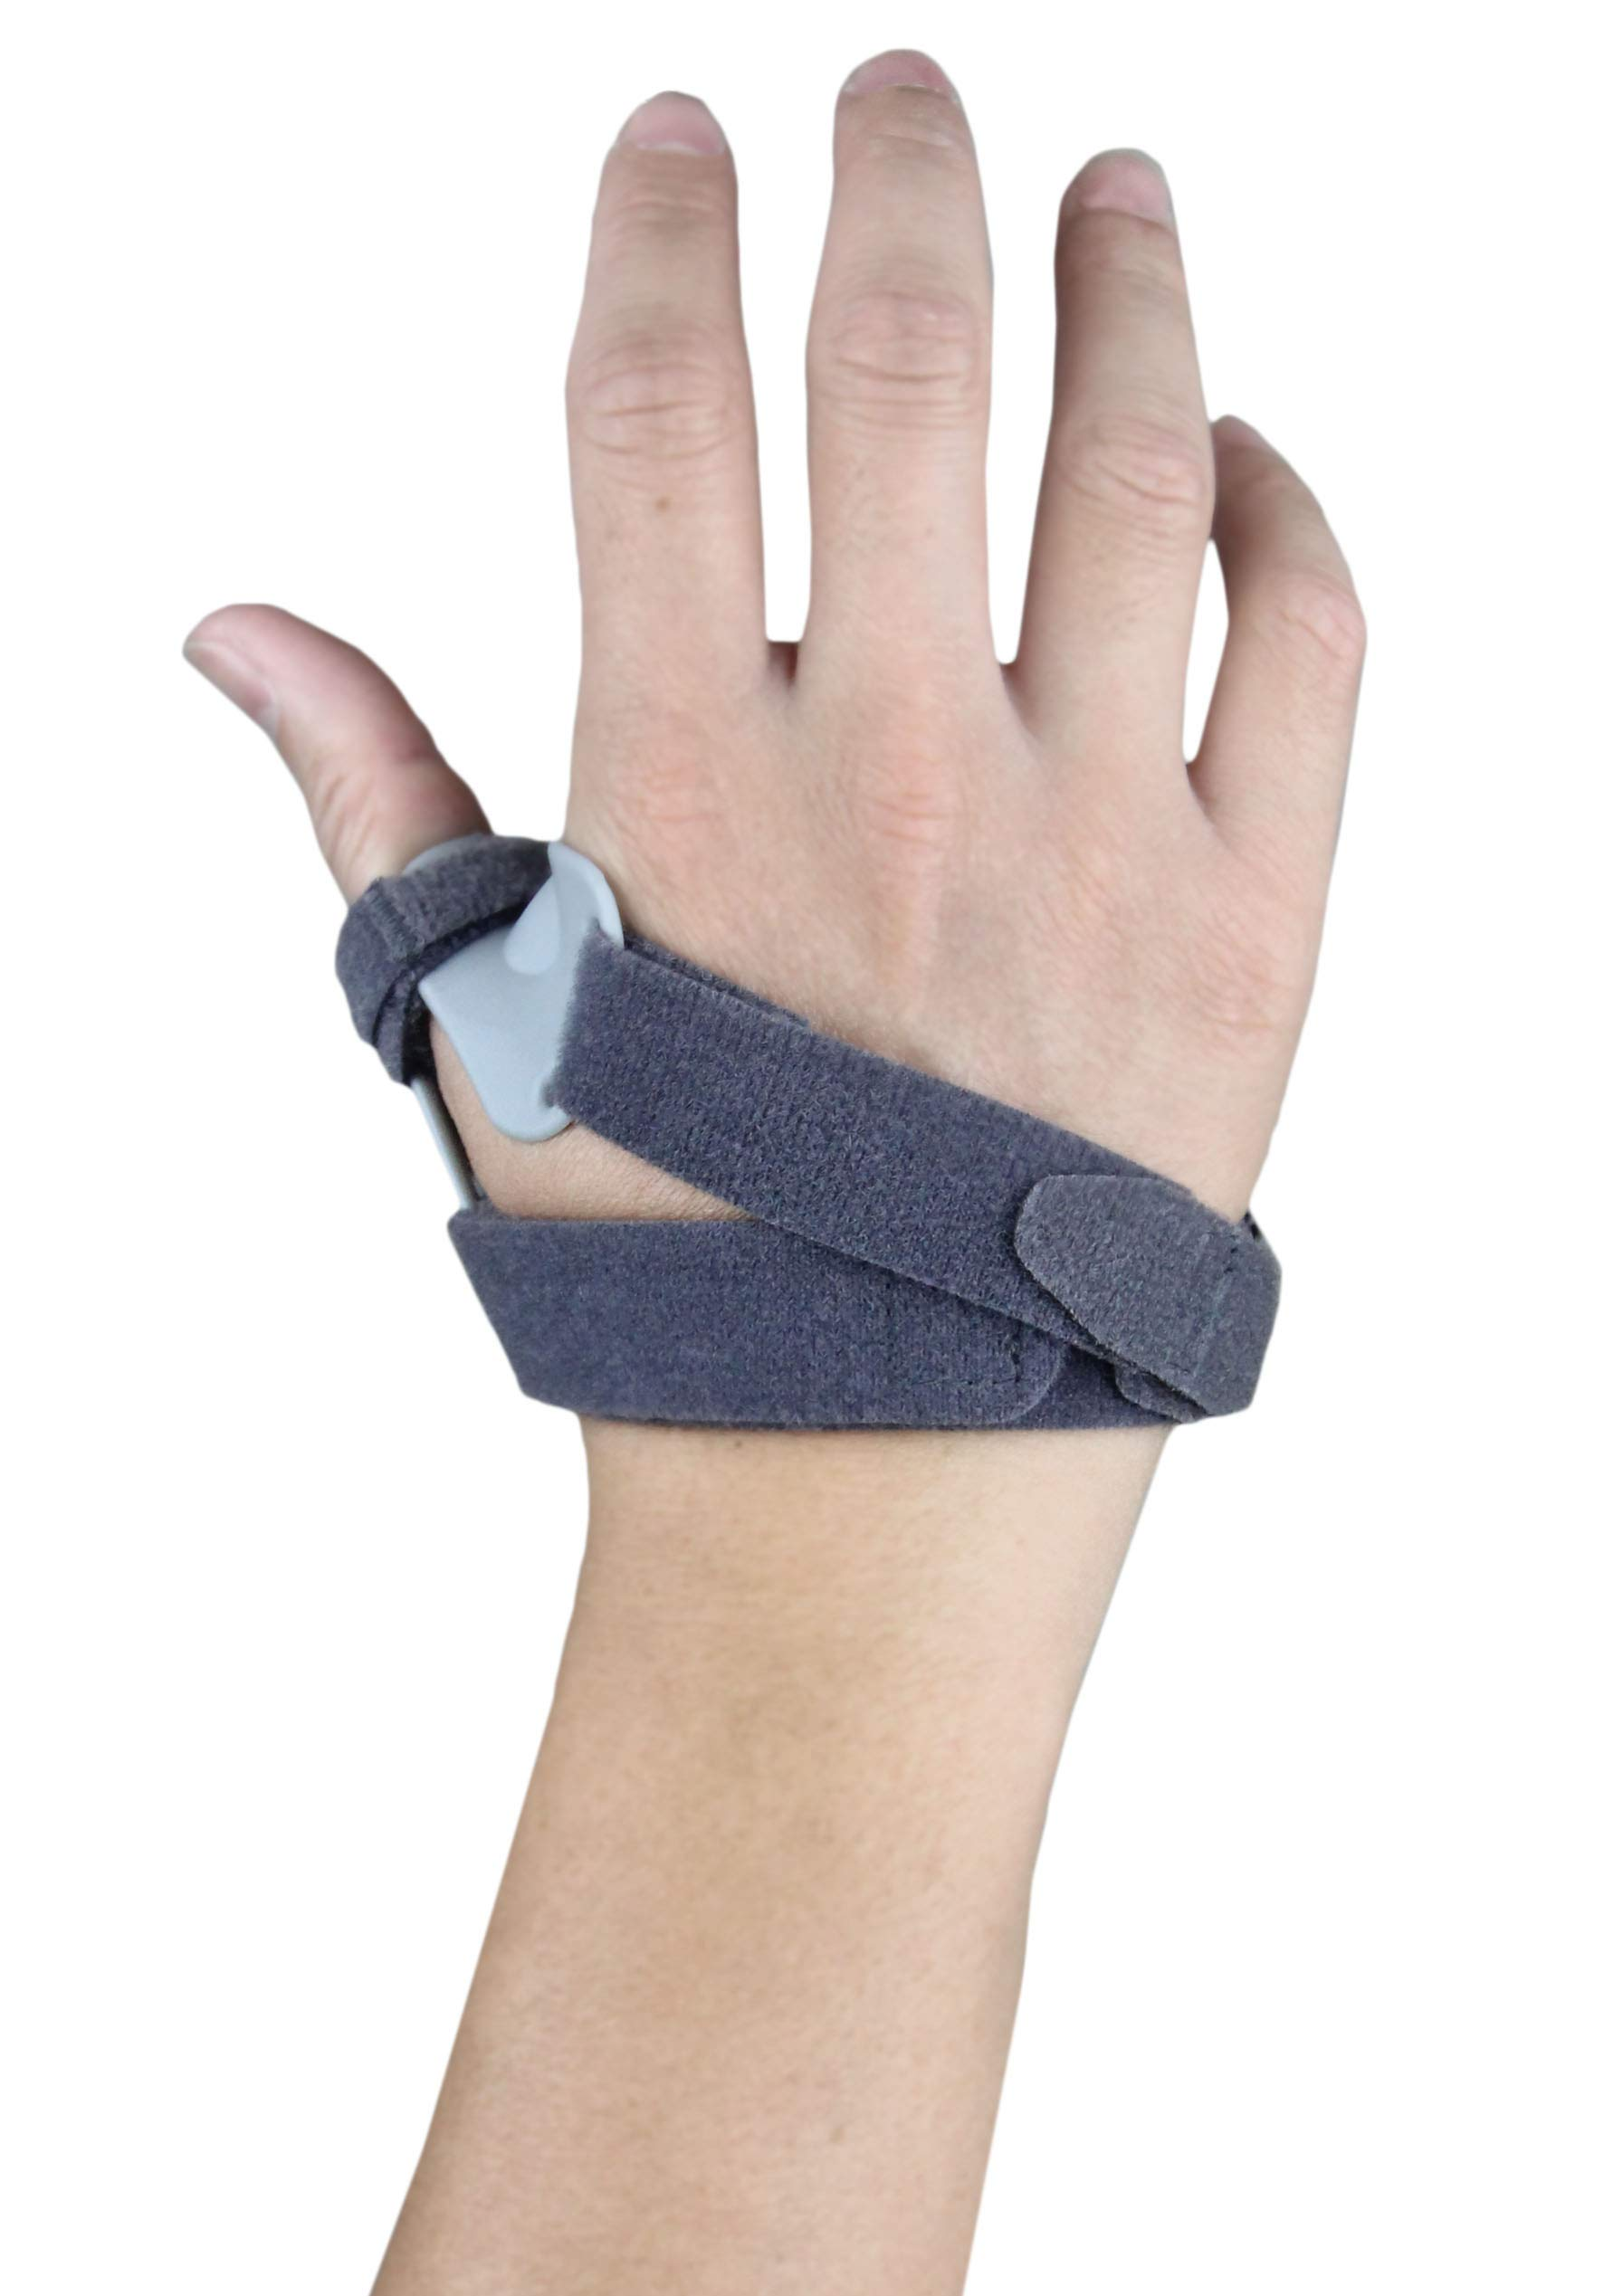 CMC Joint Thumb Arthritis Brace - Restriction Stabilizing Splint for Osteoarthritis and Other Thumb Pain Relief - Medium - Left Hand by MARS WELLNESS (Image #2)